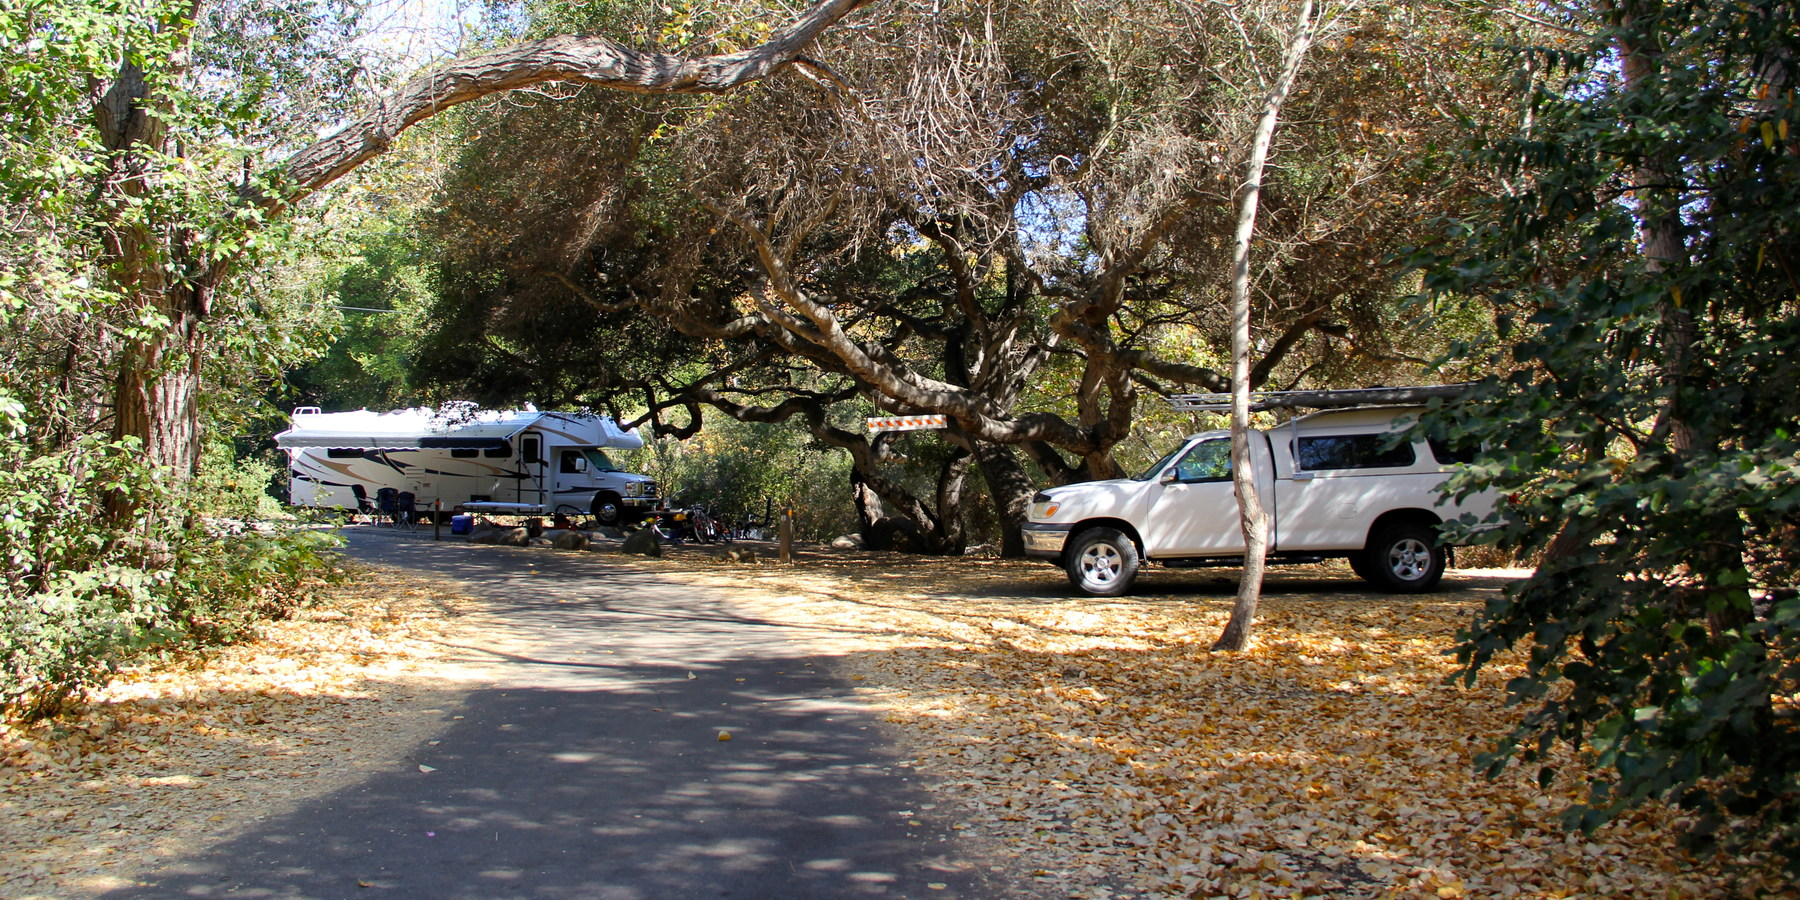 Campsites Are Shaded By Coast Live Oak Quercus Agrifolia And Western Or California Sycamore A Campsite On Loop 1 28 El Capitan State Beach